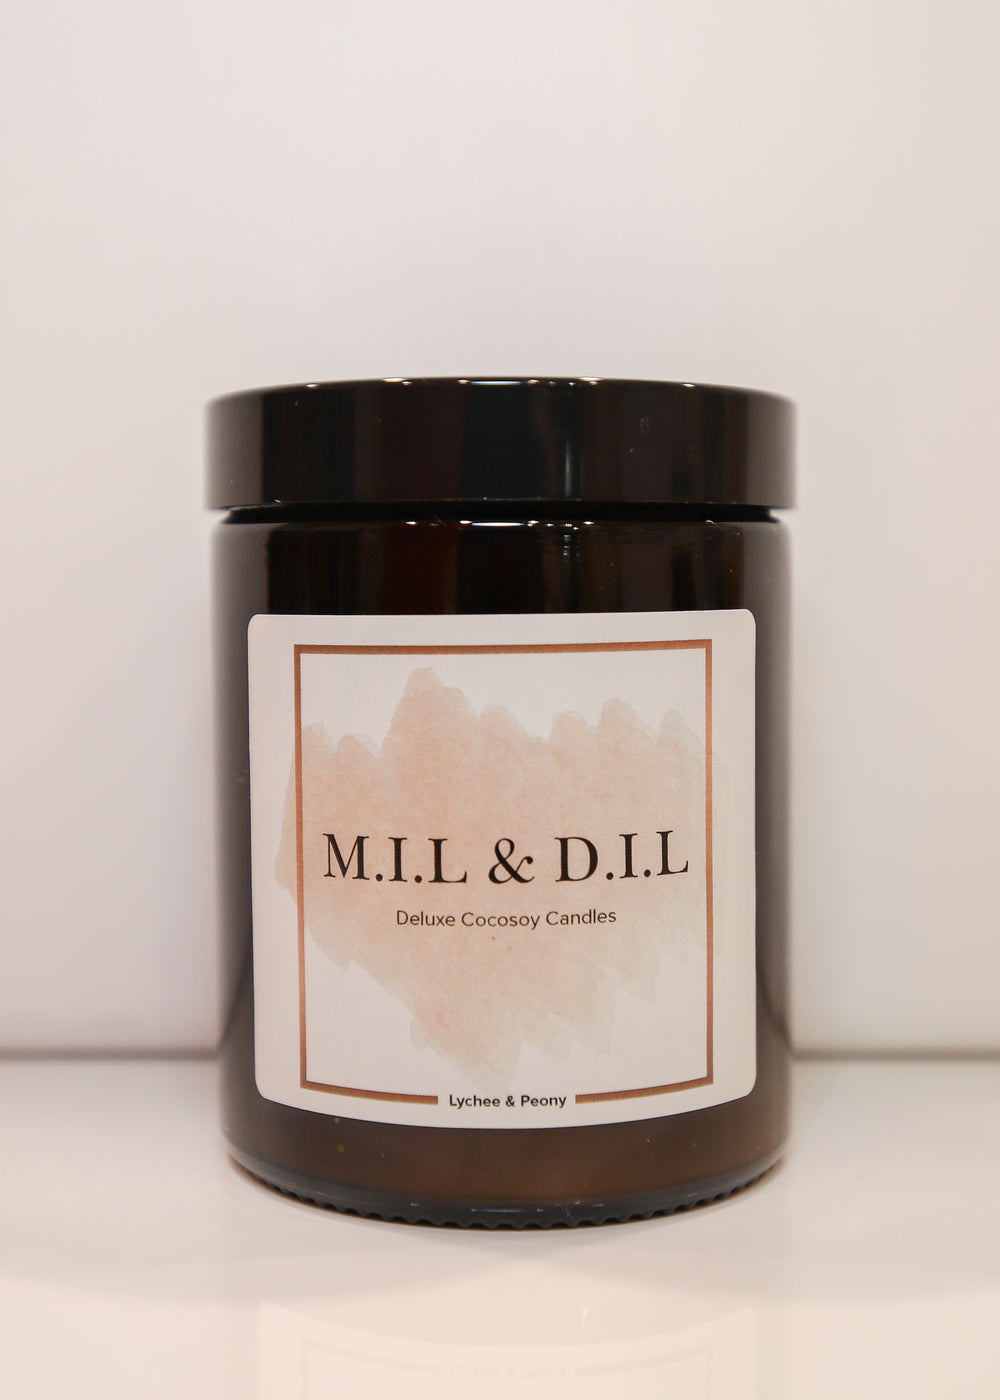 Mil & Dil - Deluxe Cocosoy Candles (Small)